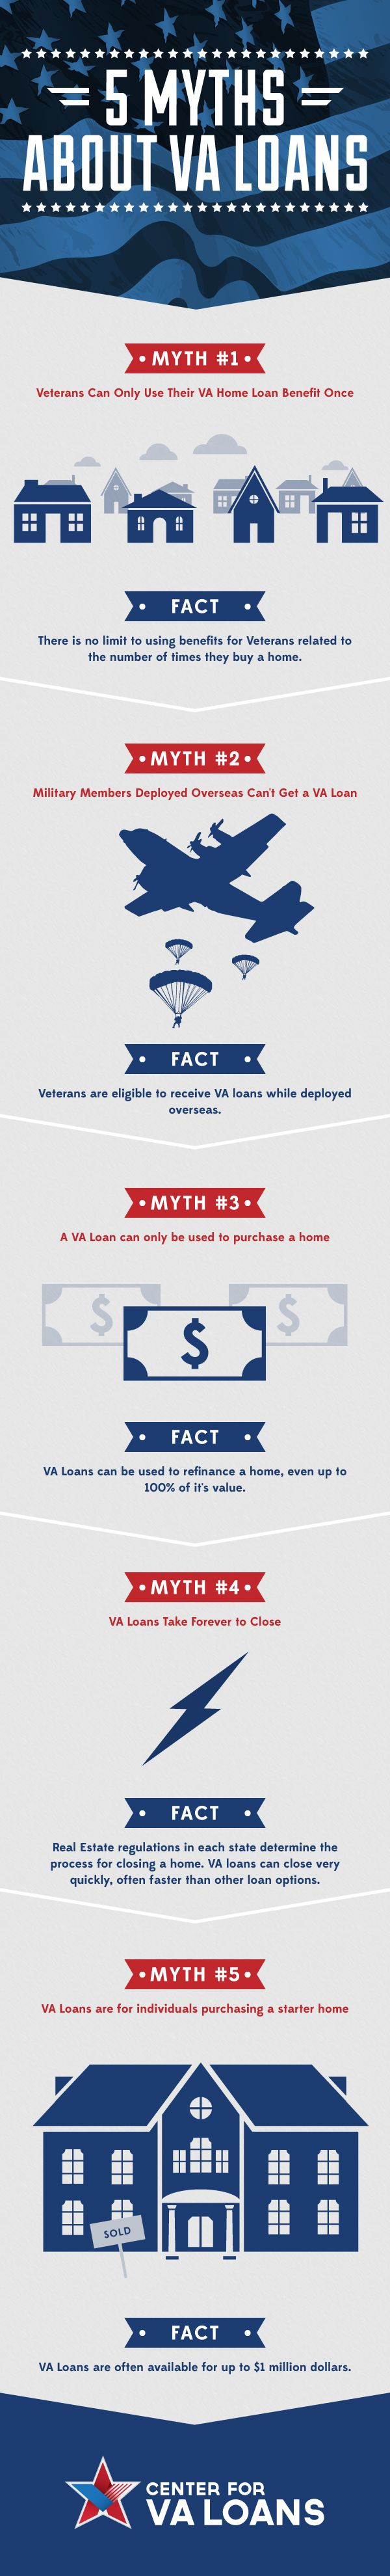 17 best images about va loans on pinterest 5 facts about va loans infographic xflitez Images